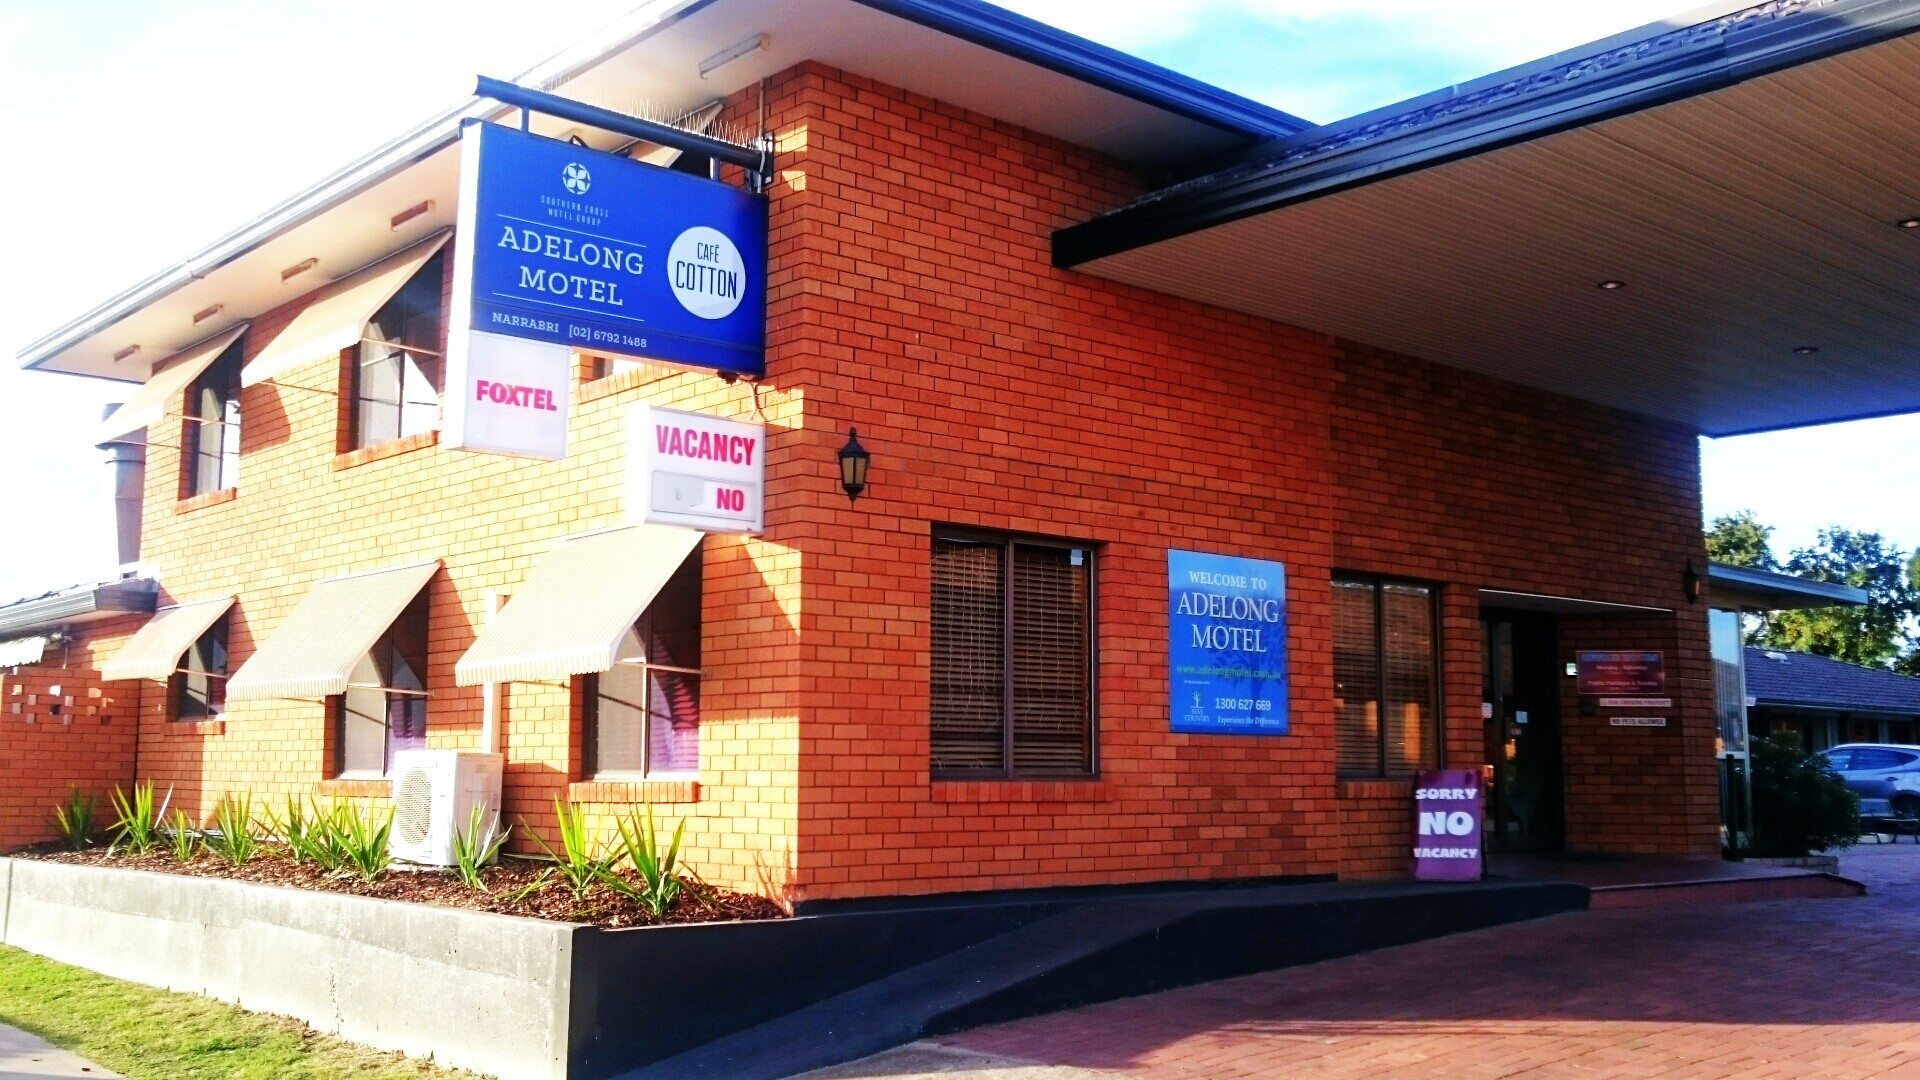 Narrabri Accommodation, the Adelong Motel reception is open from 8am to 8pm Monday to Saturday and 8:30am to 8pm on Sundays